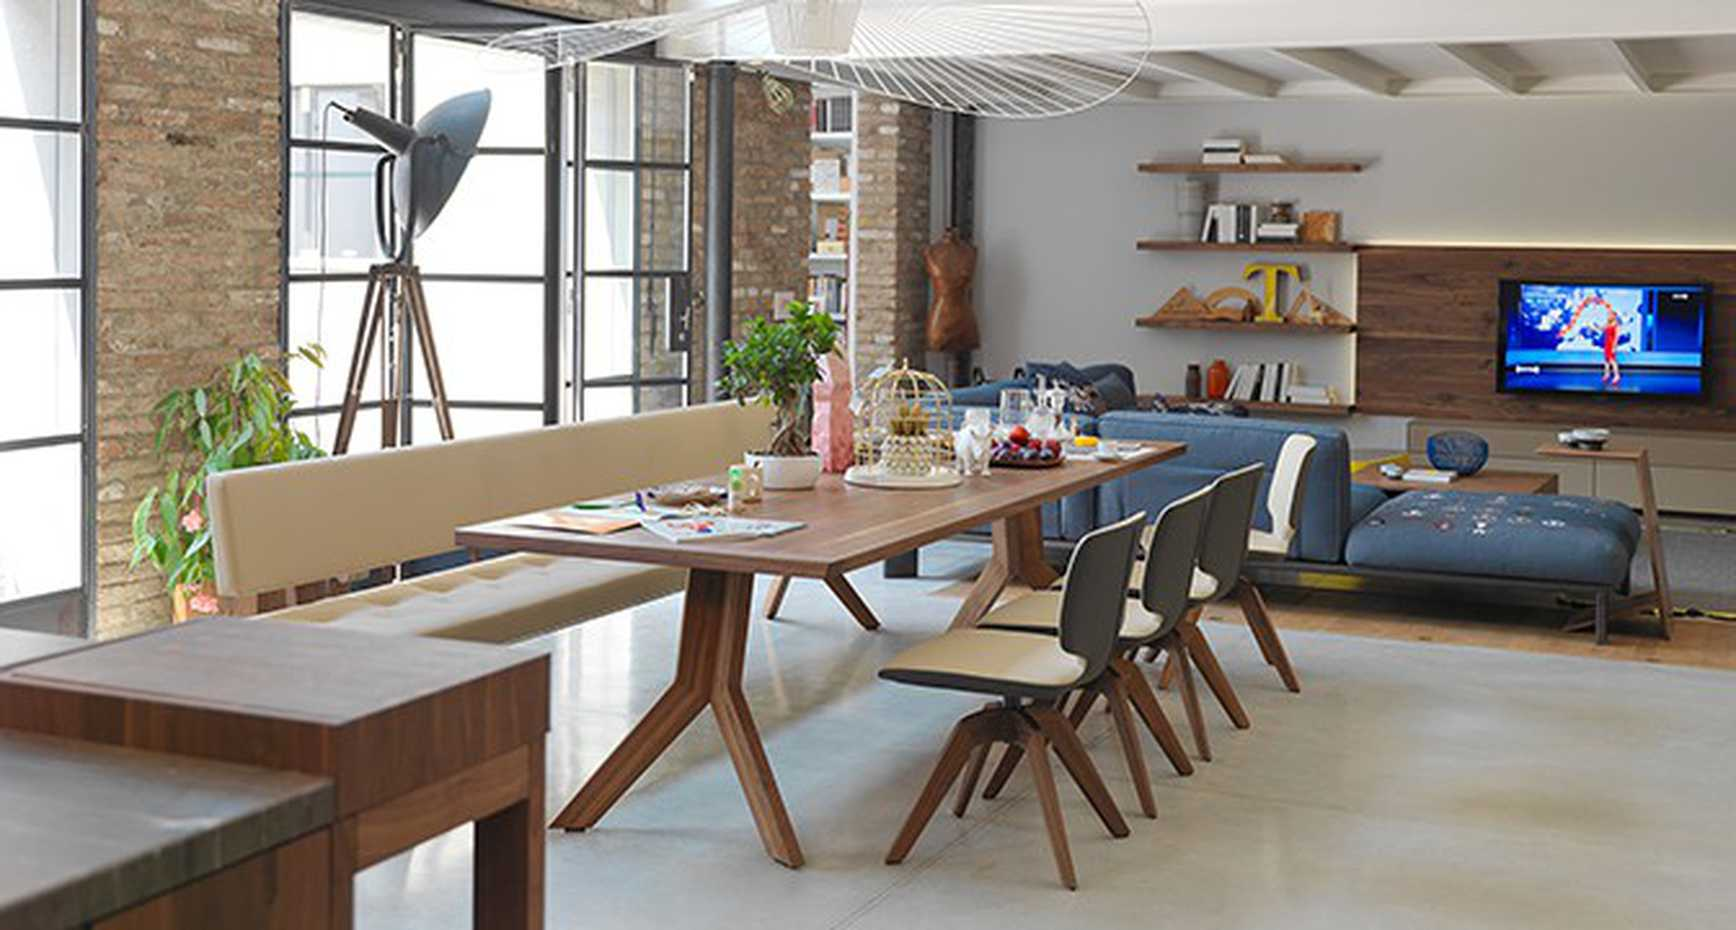 Yps Table  by Team 7 product image 1